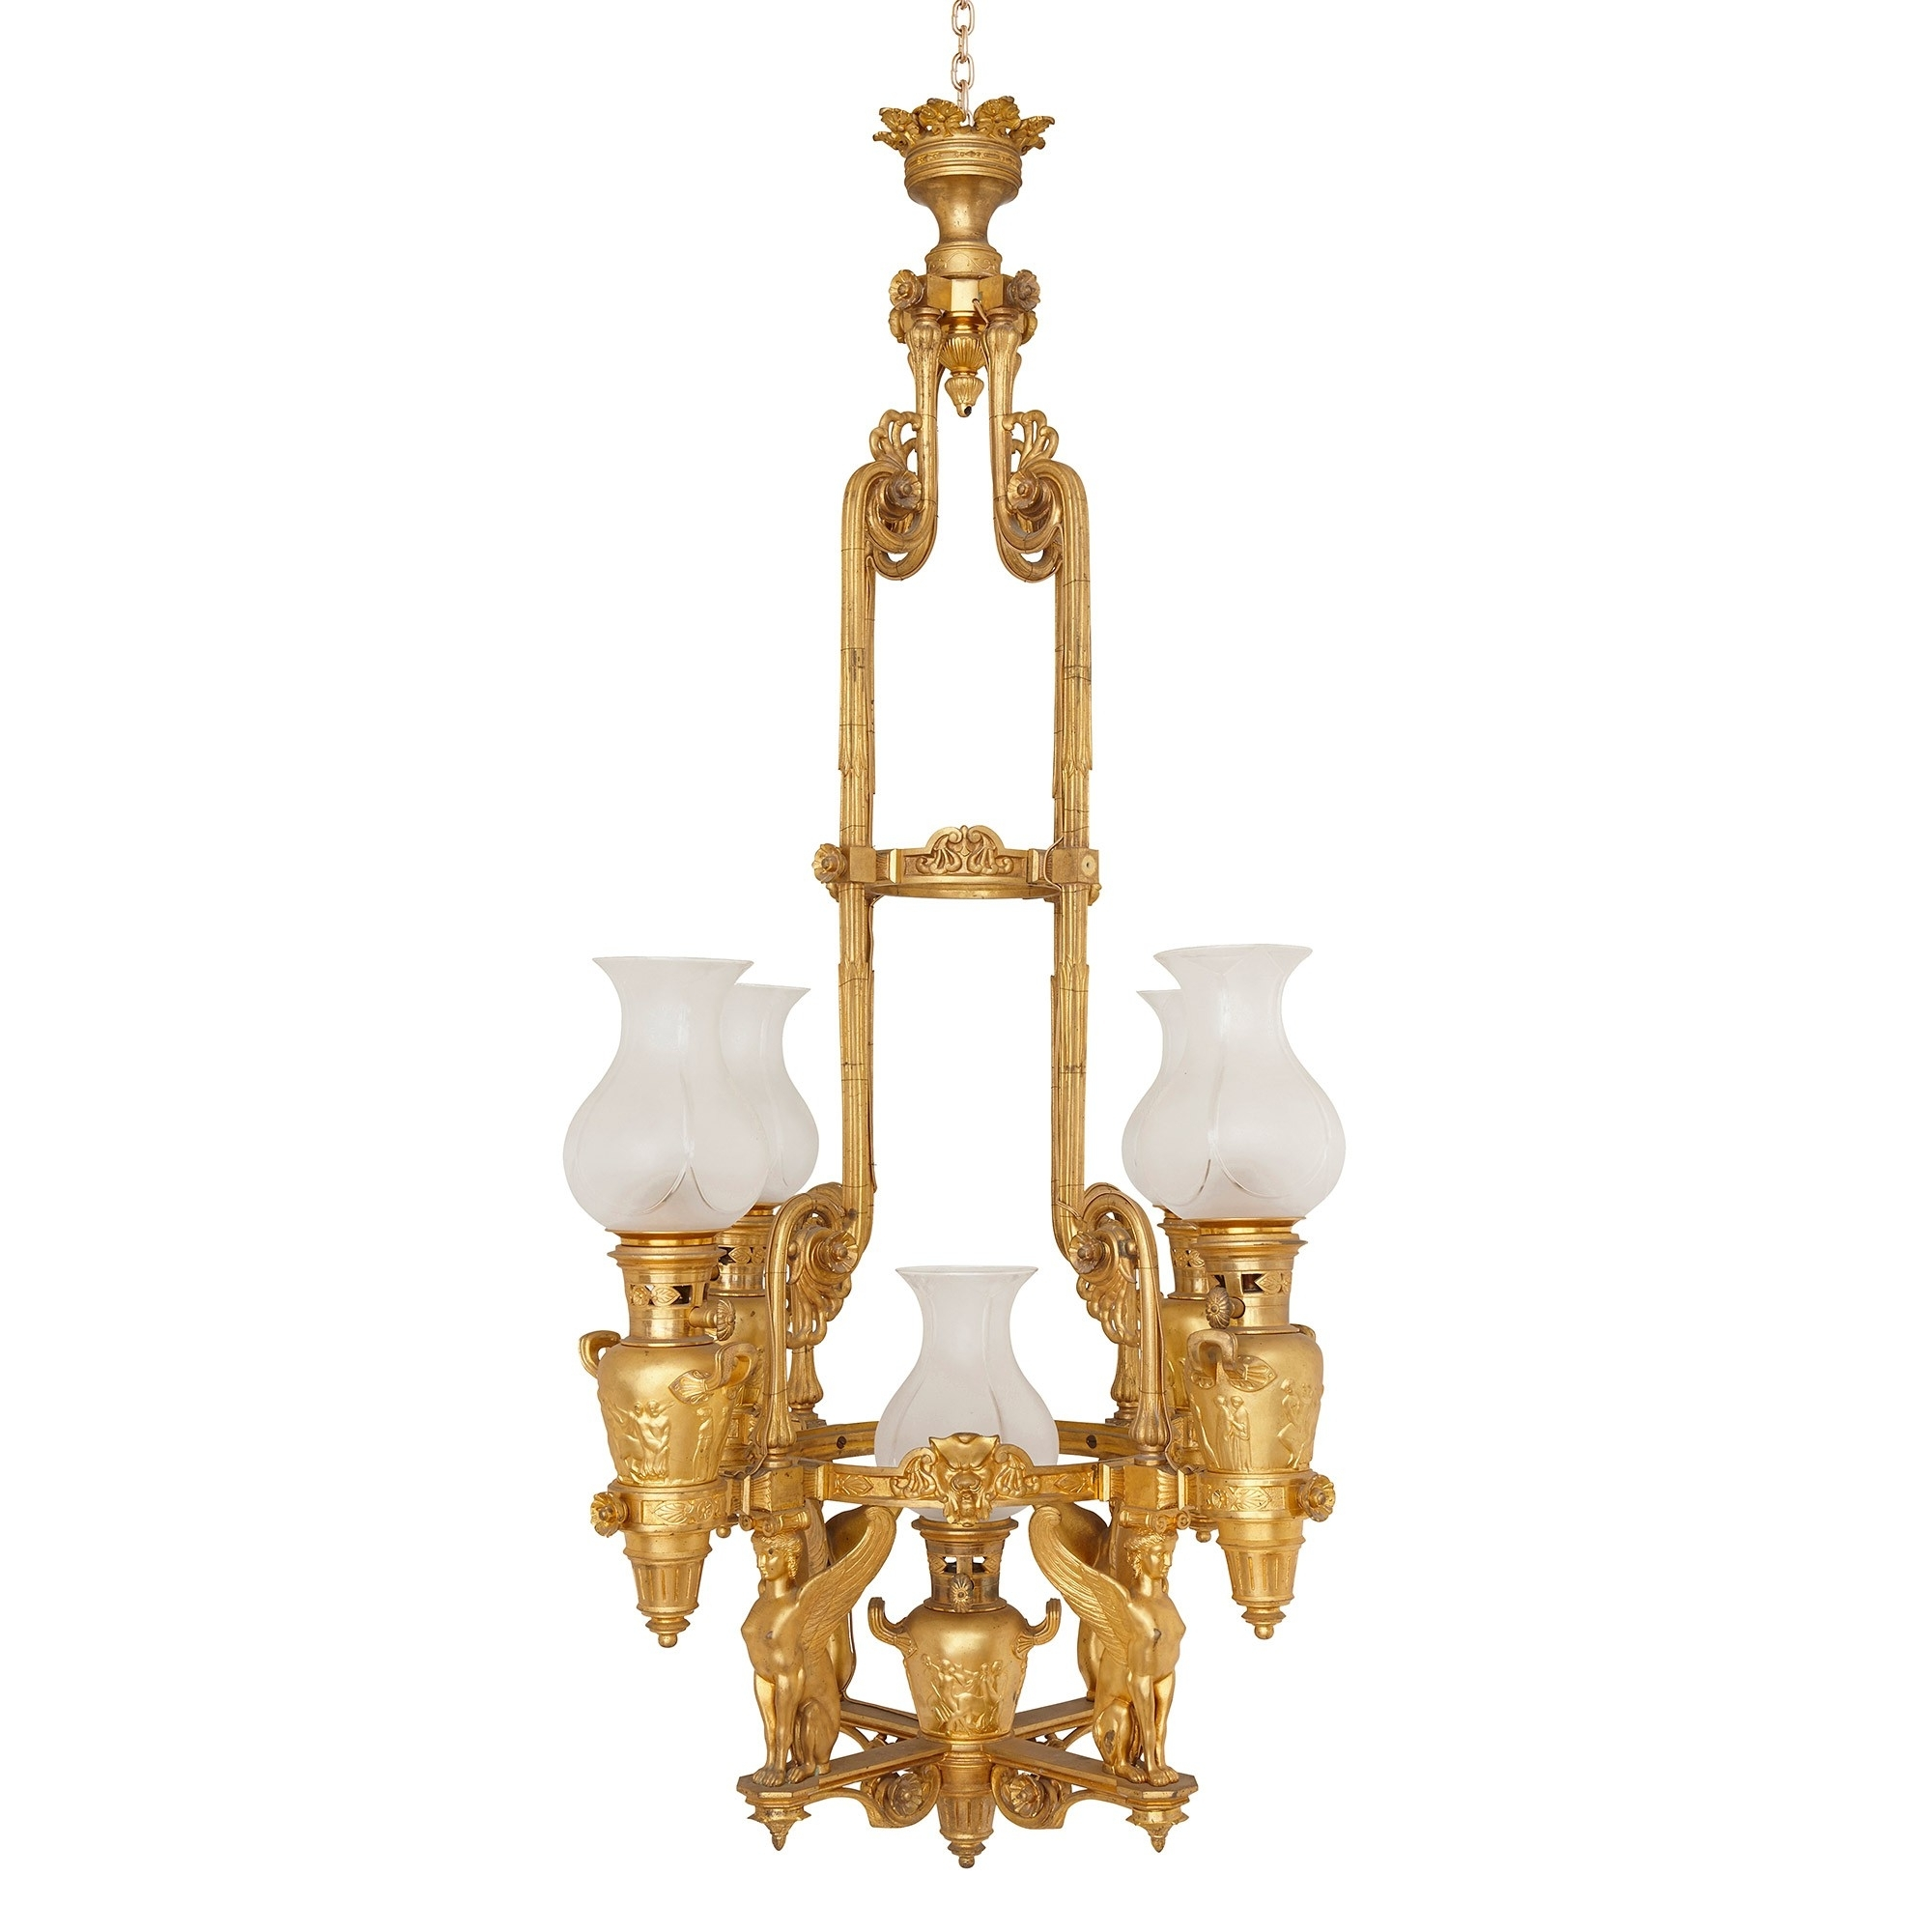 Antique French Empire Style Ormolu Chandelier (View 3 of 20)